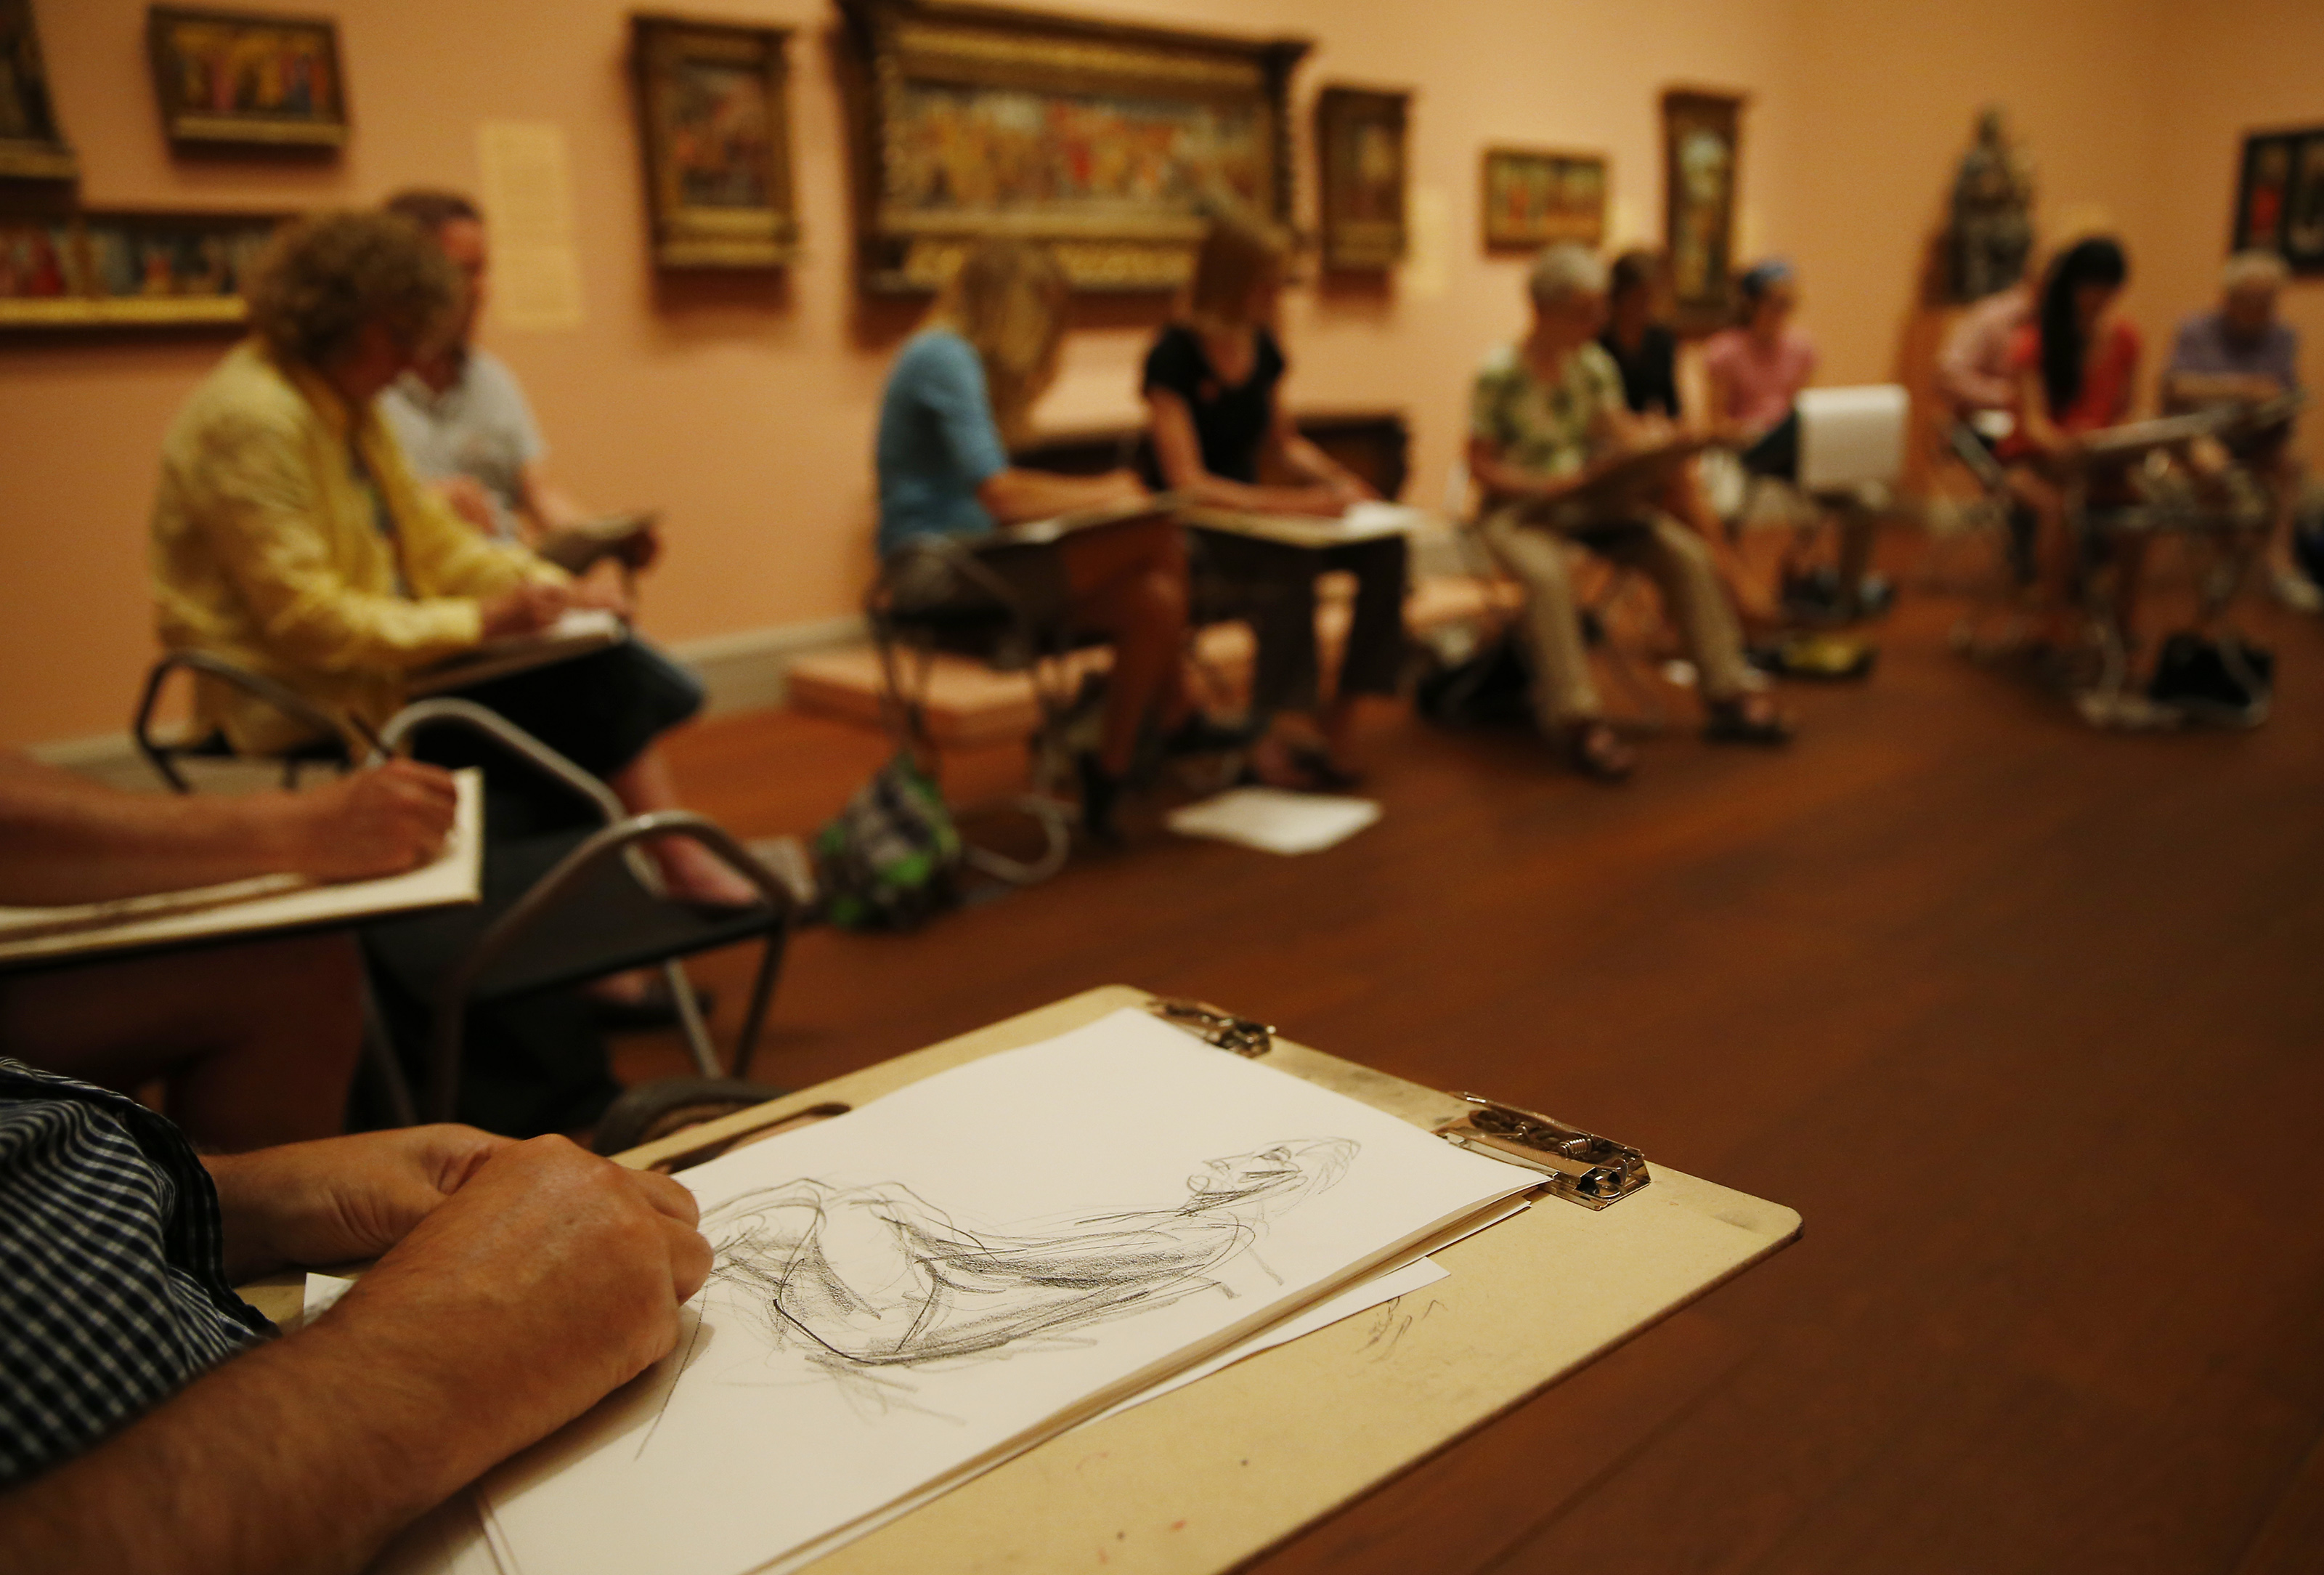 In Worcester, nude-figure sketch classes drawing attention